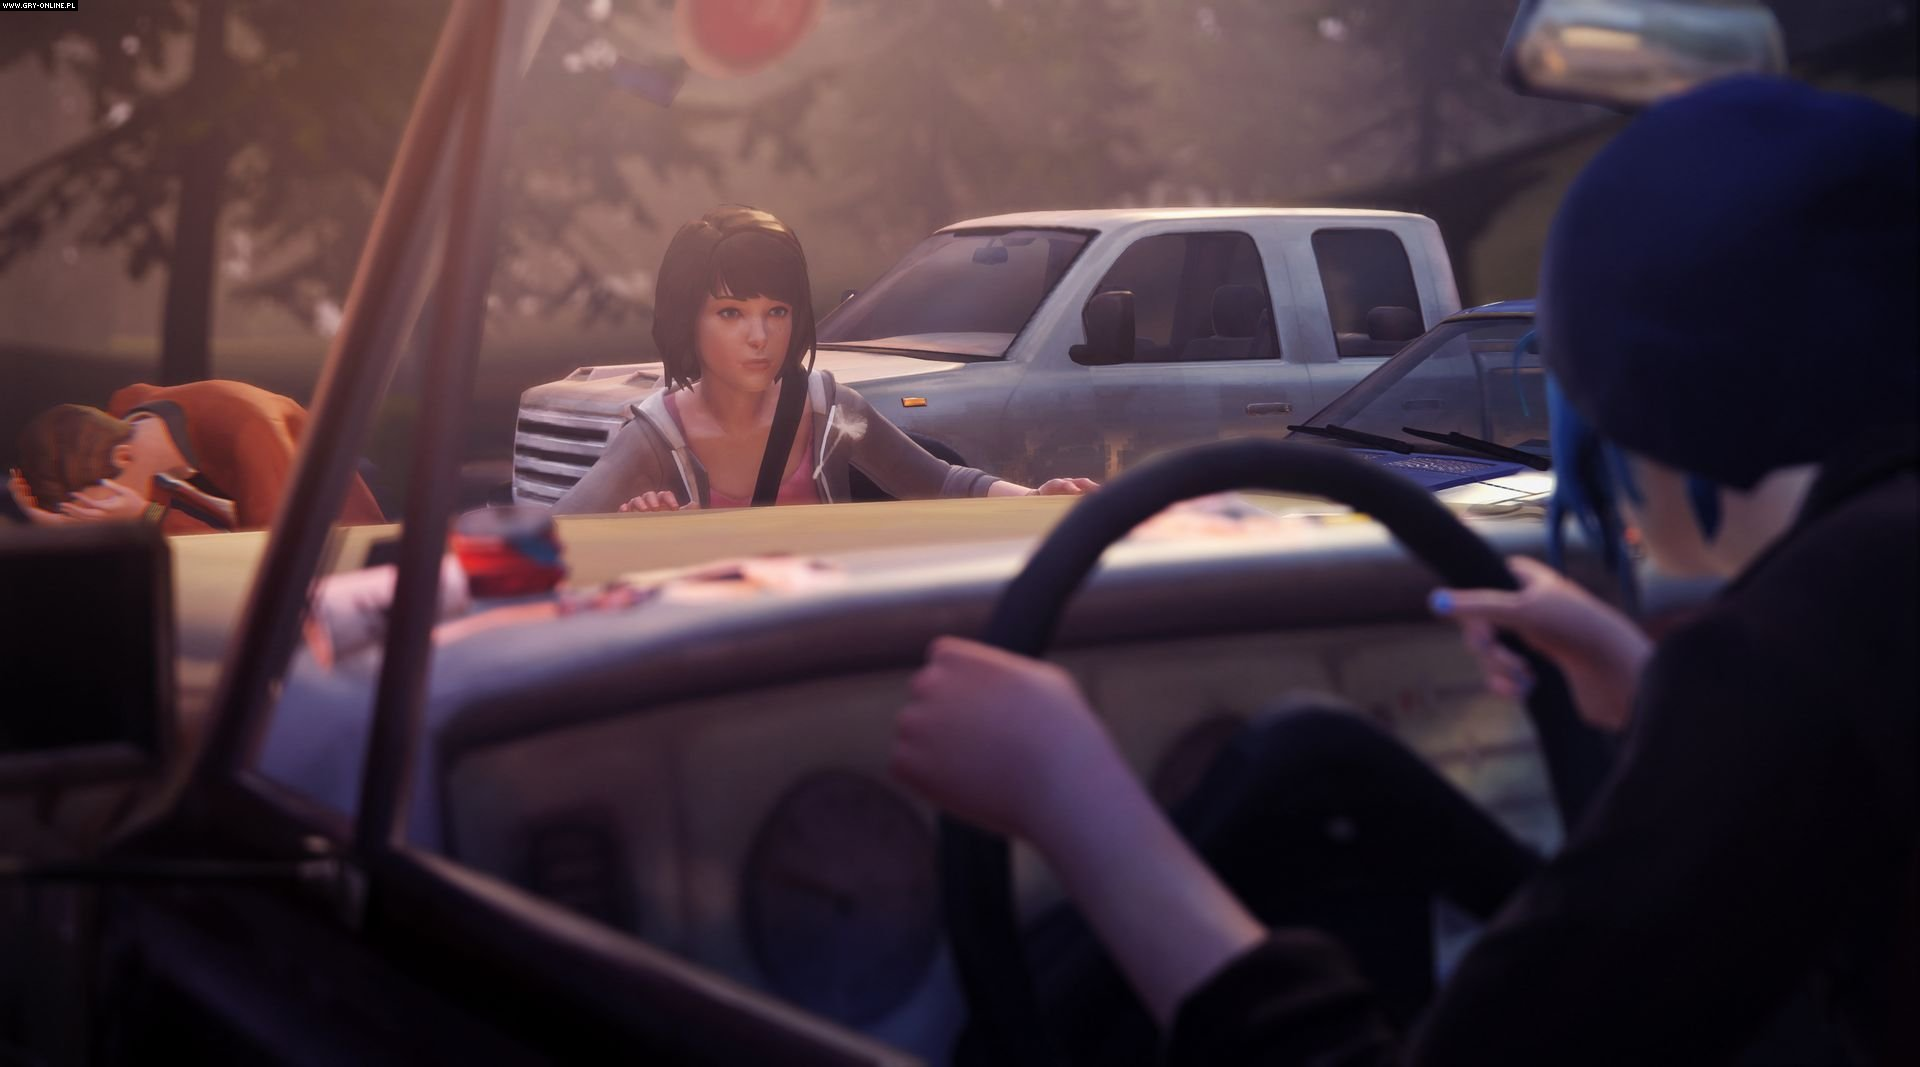 Life is Strange PC, X360, PS3, PS4, XONE, AND, iOS Games Image 18/36, DONTNOD Entertainment, Square-Enix / Eidos